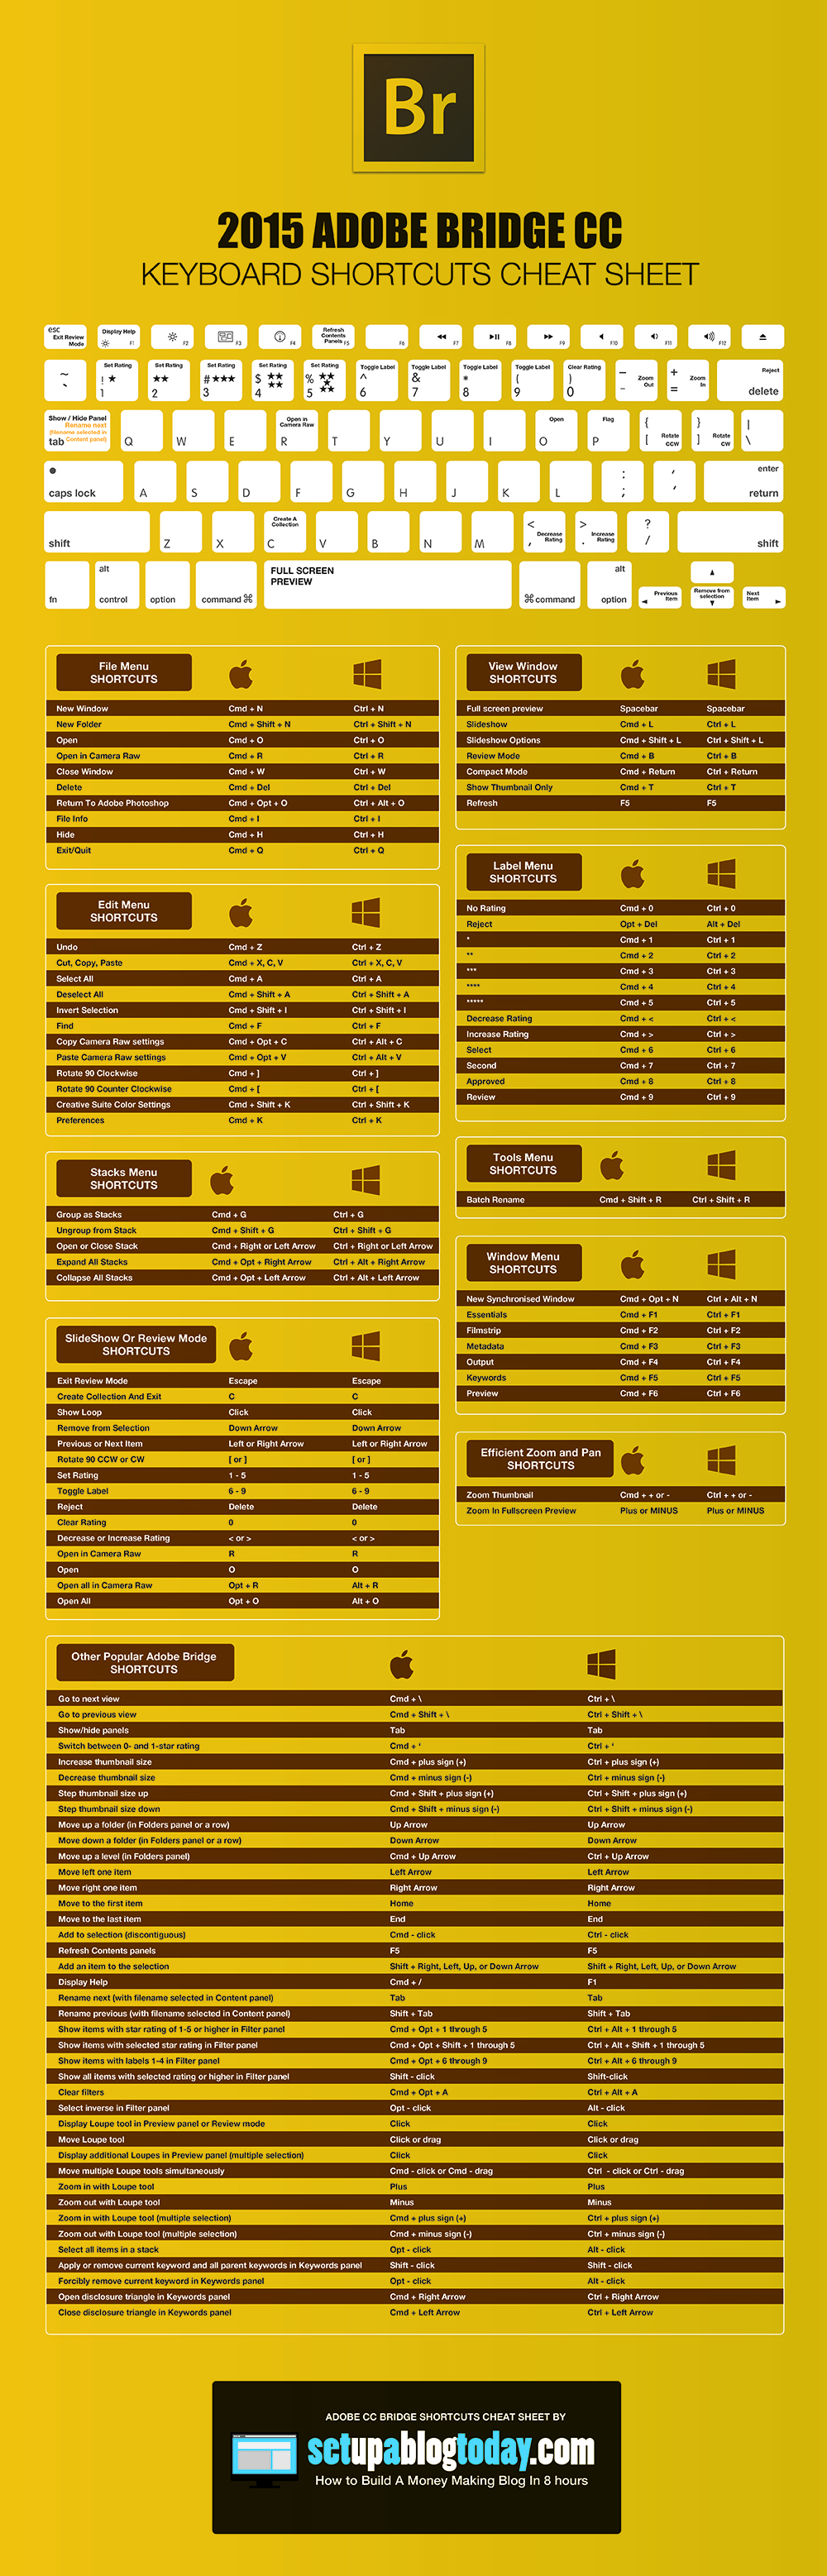 Adobe Bridge Keyboards Shortcuts